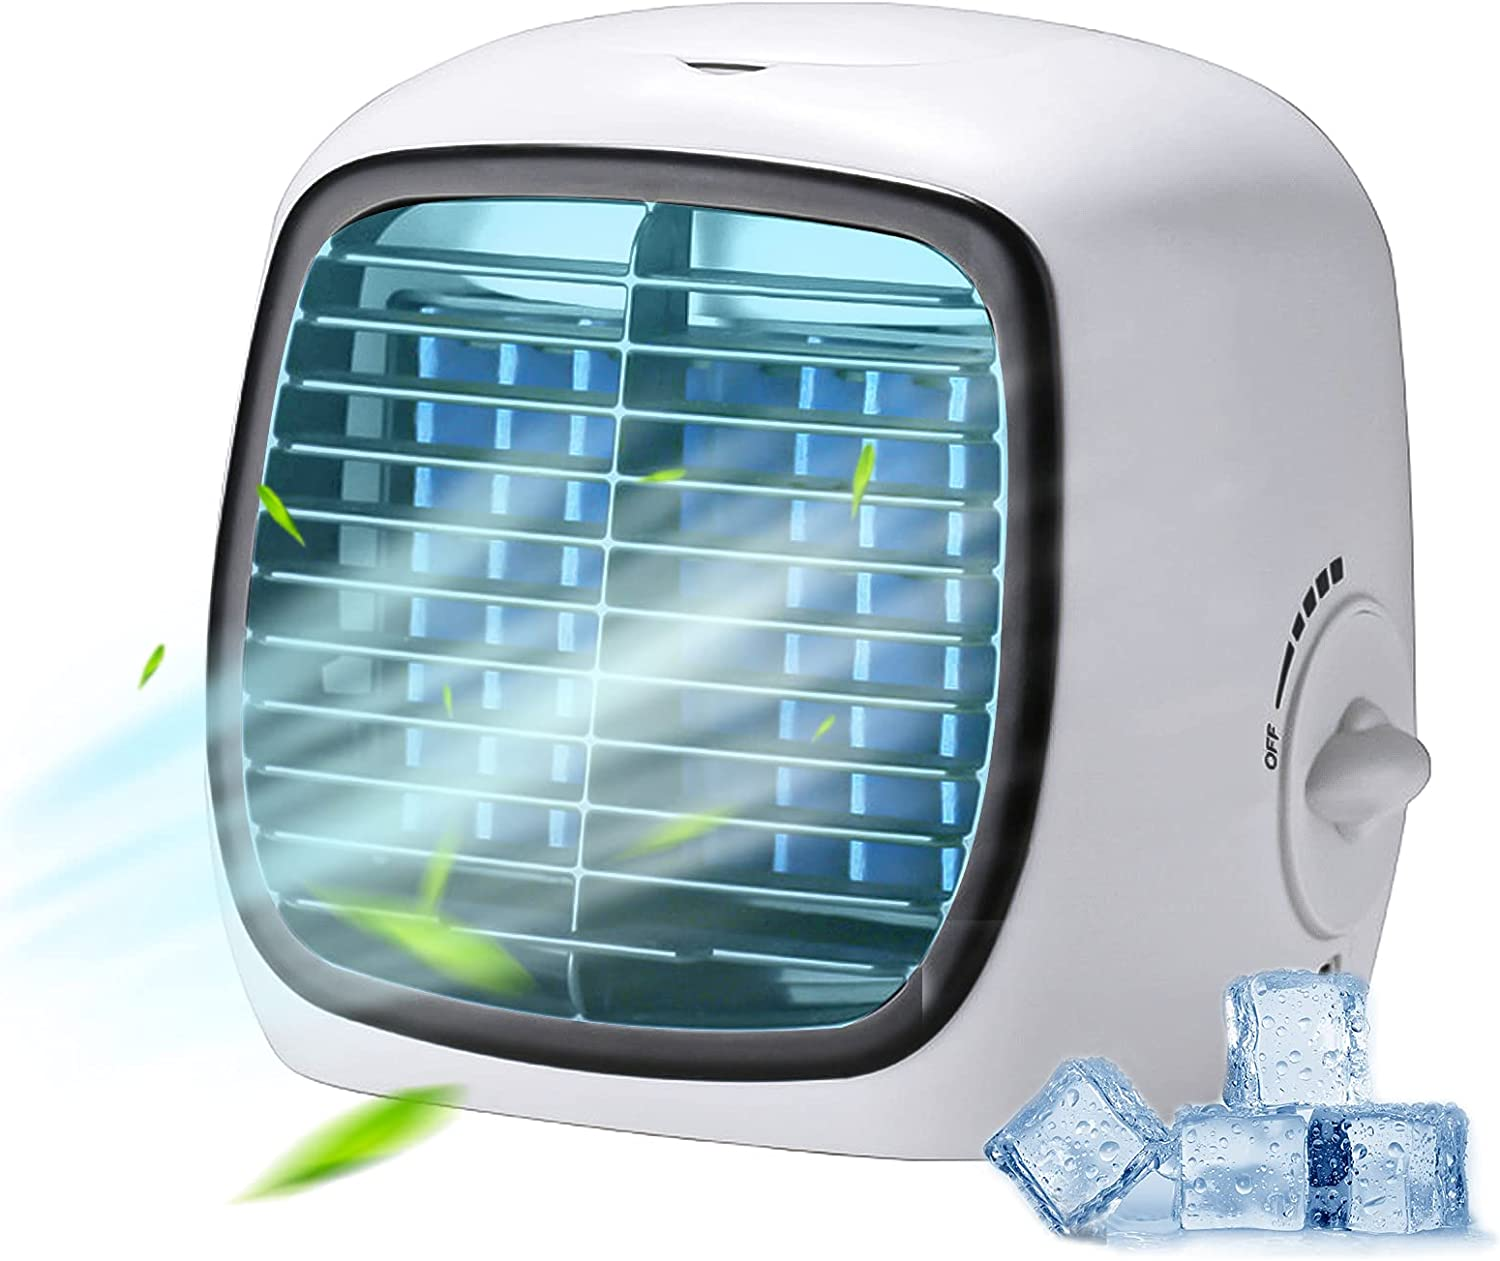 IVYUP Courier shipping free shipping Mini Portable Air Conditioner outlet Personal Wa Cooler with